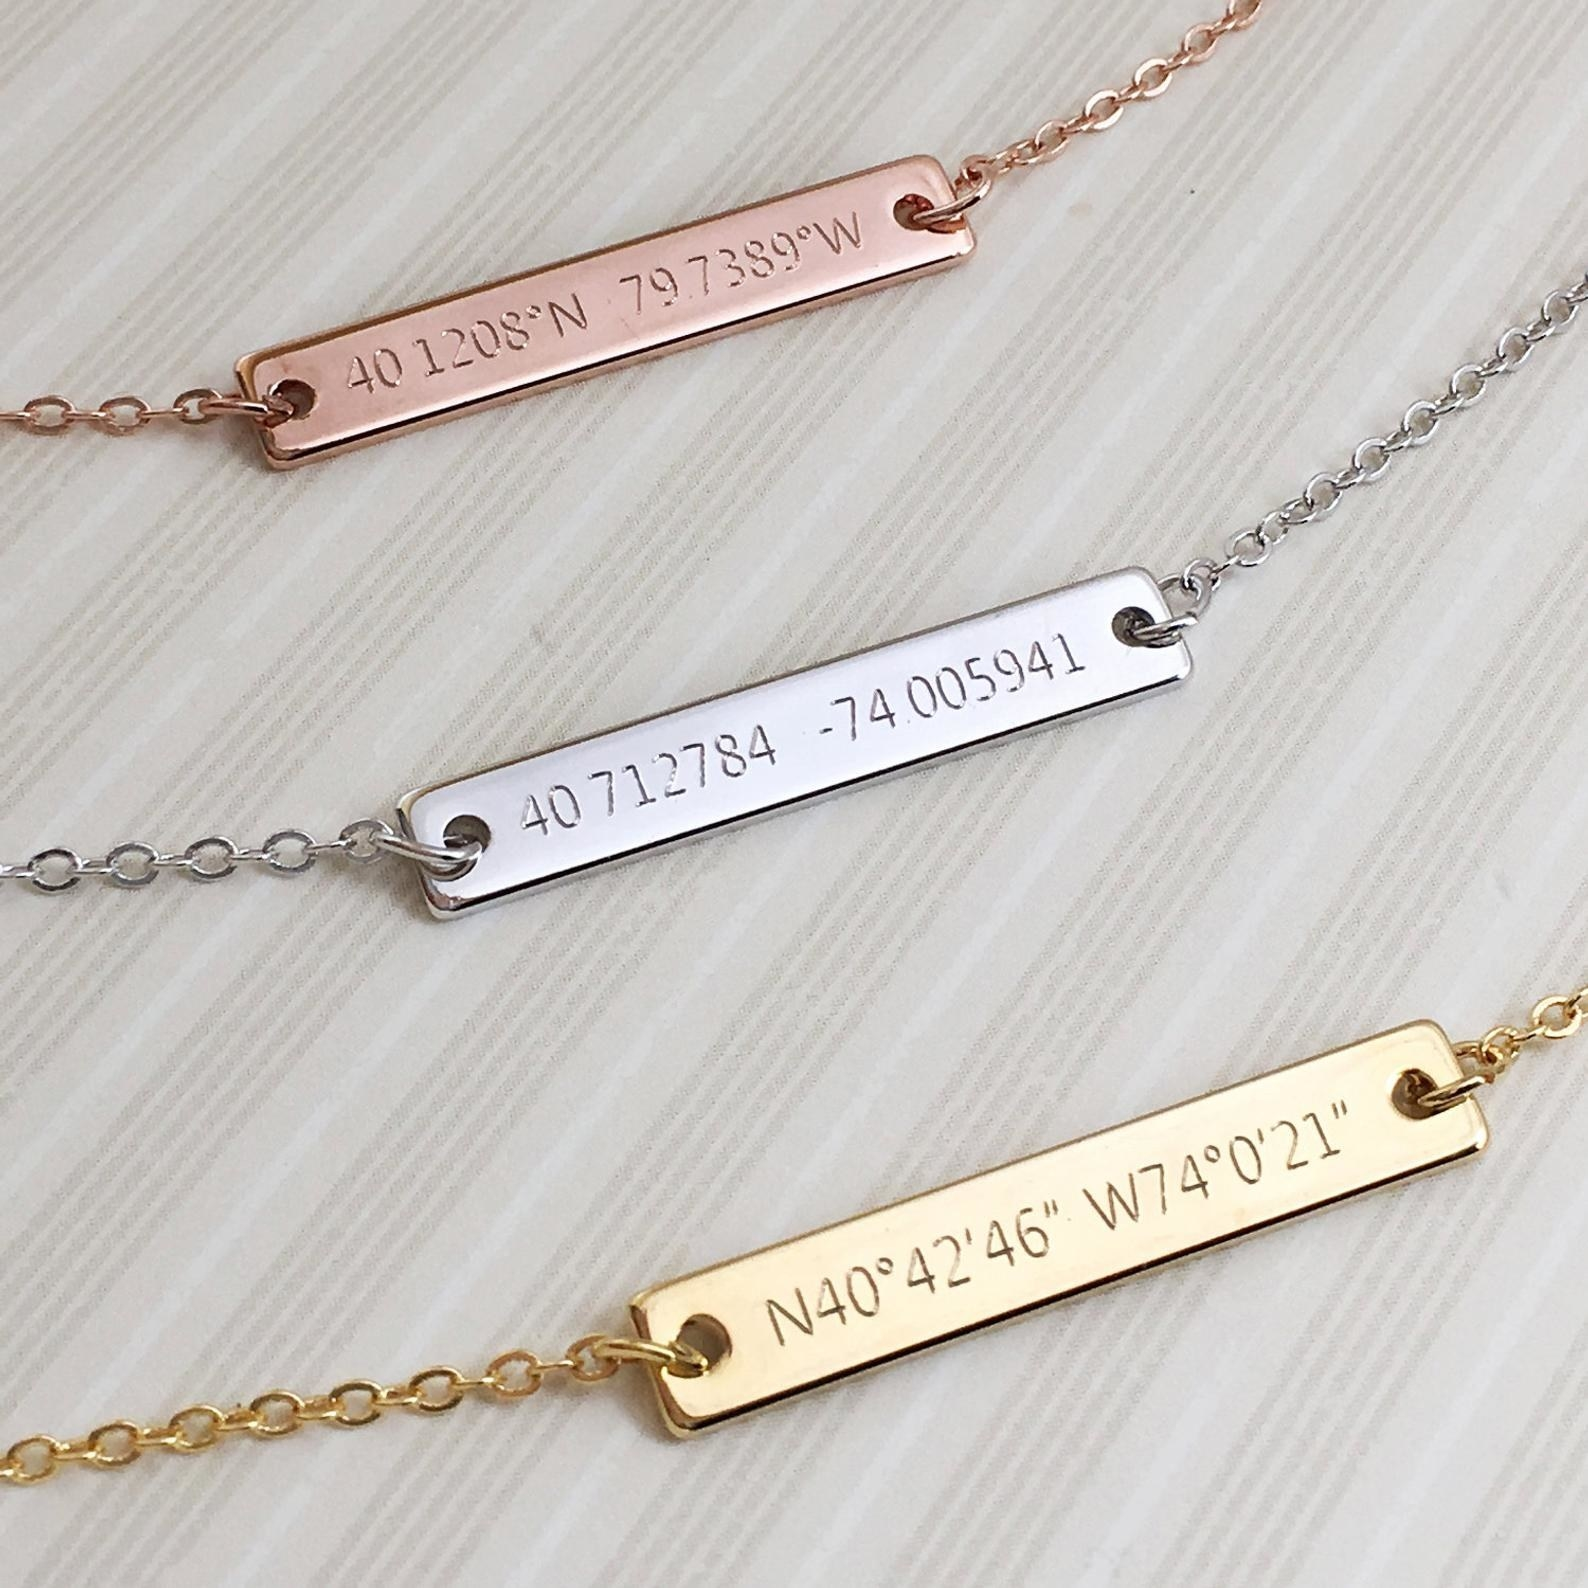 Chain necklace with engraved plate